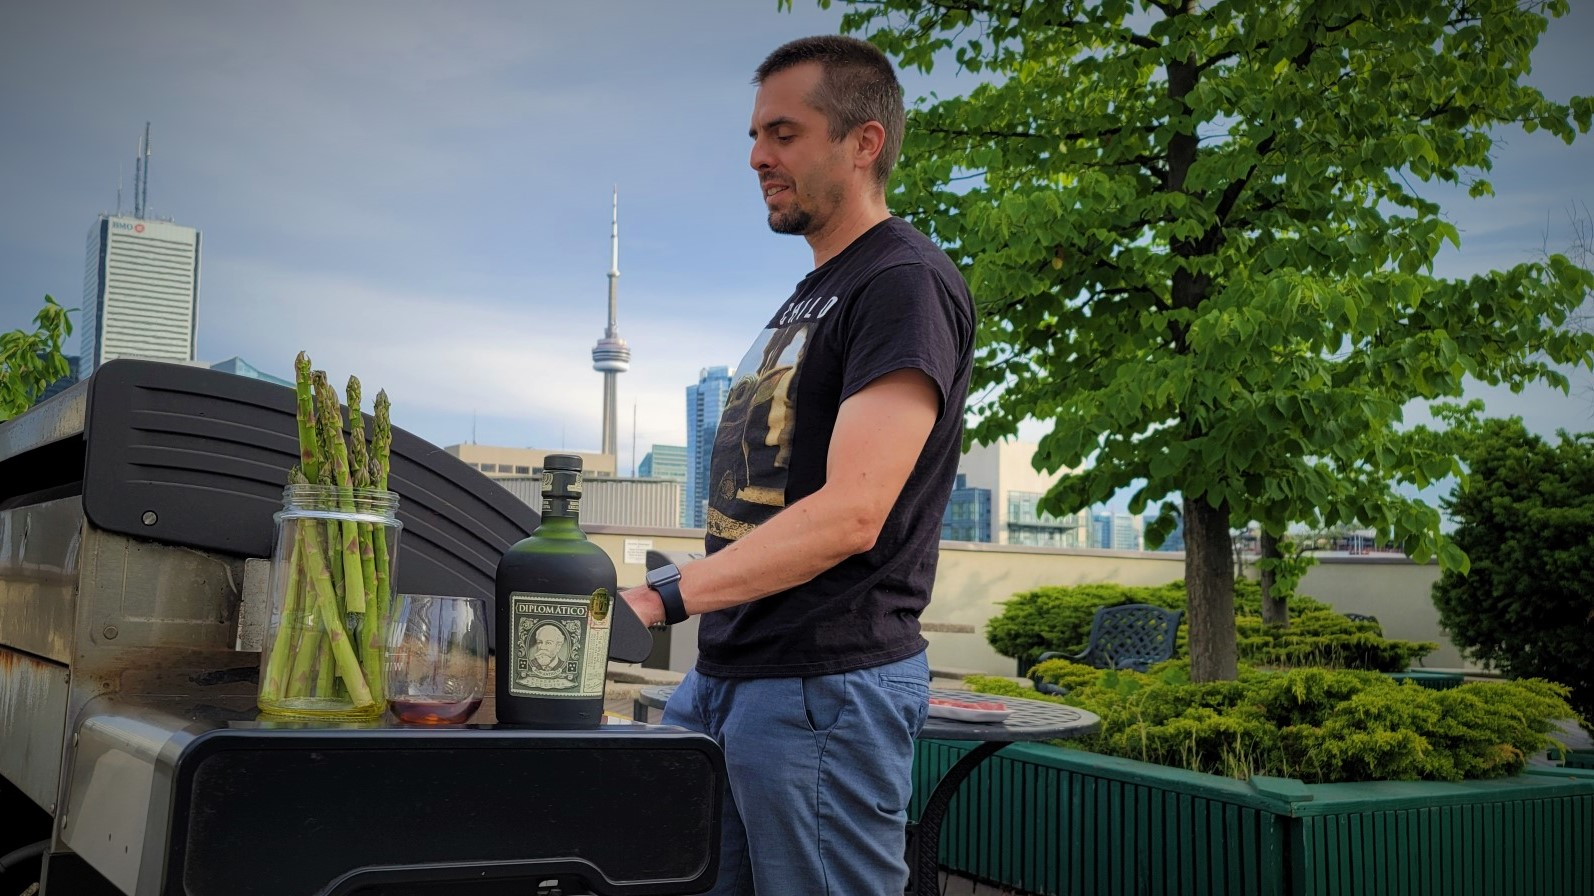 Man grilling with rum and asparagus. CN tower condo in background.